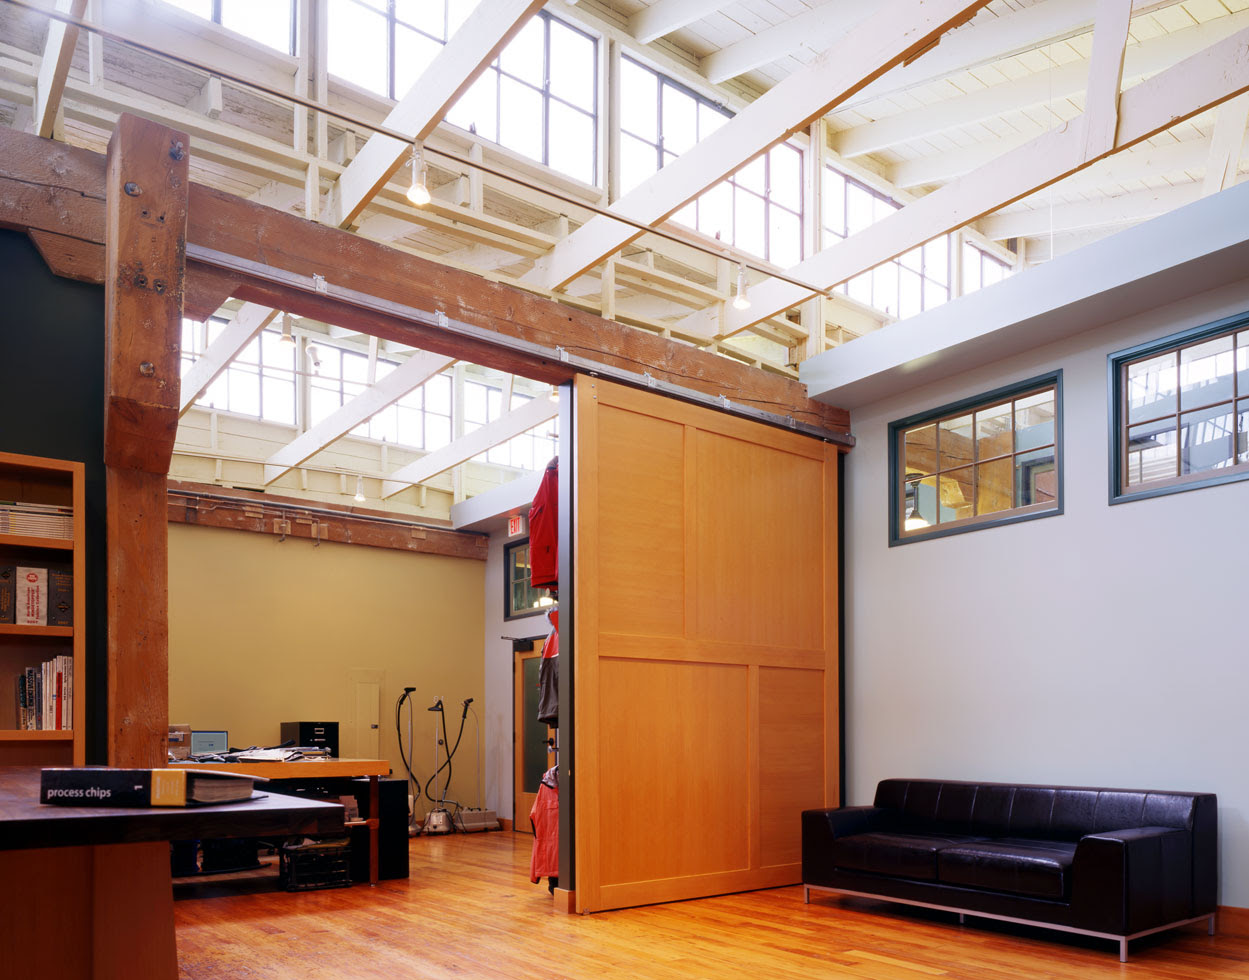 Creative Office Space Brick And Timber Architecture Design San Francisco International